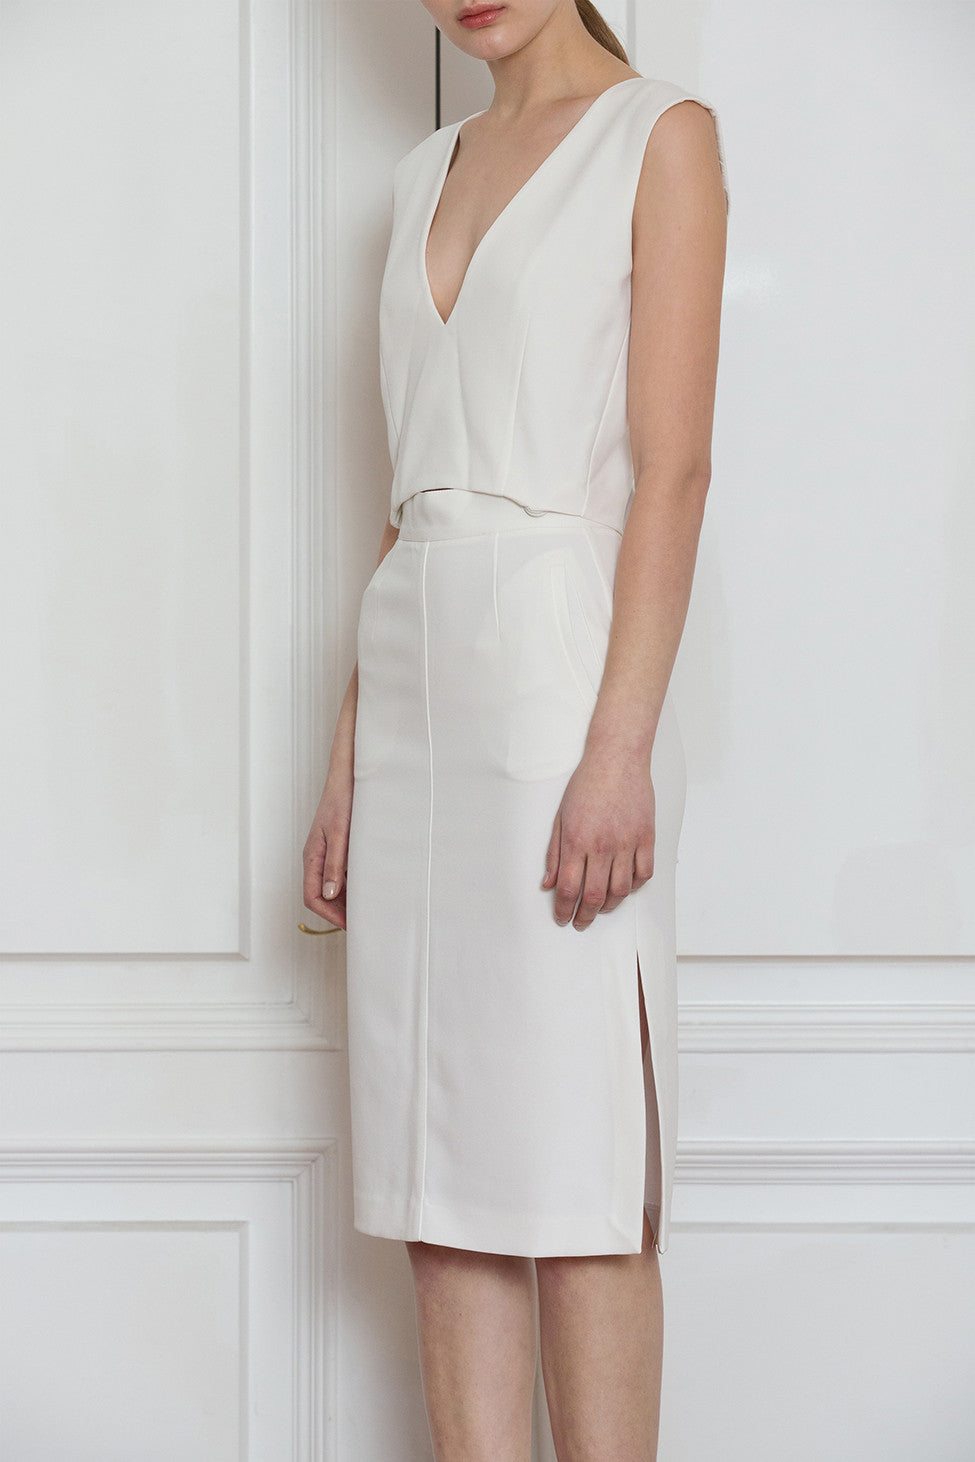 The Kole Dress in White, featuring deep V-neckline, sleeveless, open back in eyelet detailing with self-tie. Detachable snap button closure that can be worn separately as top and skirt. Skirt has a concealed zip fastening at the back.